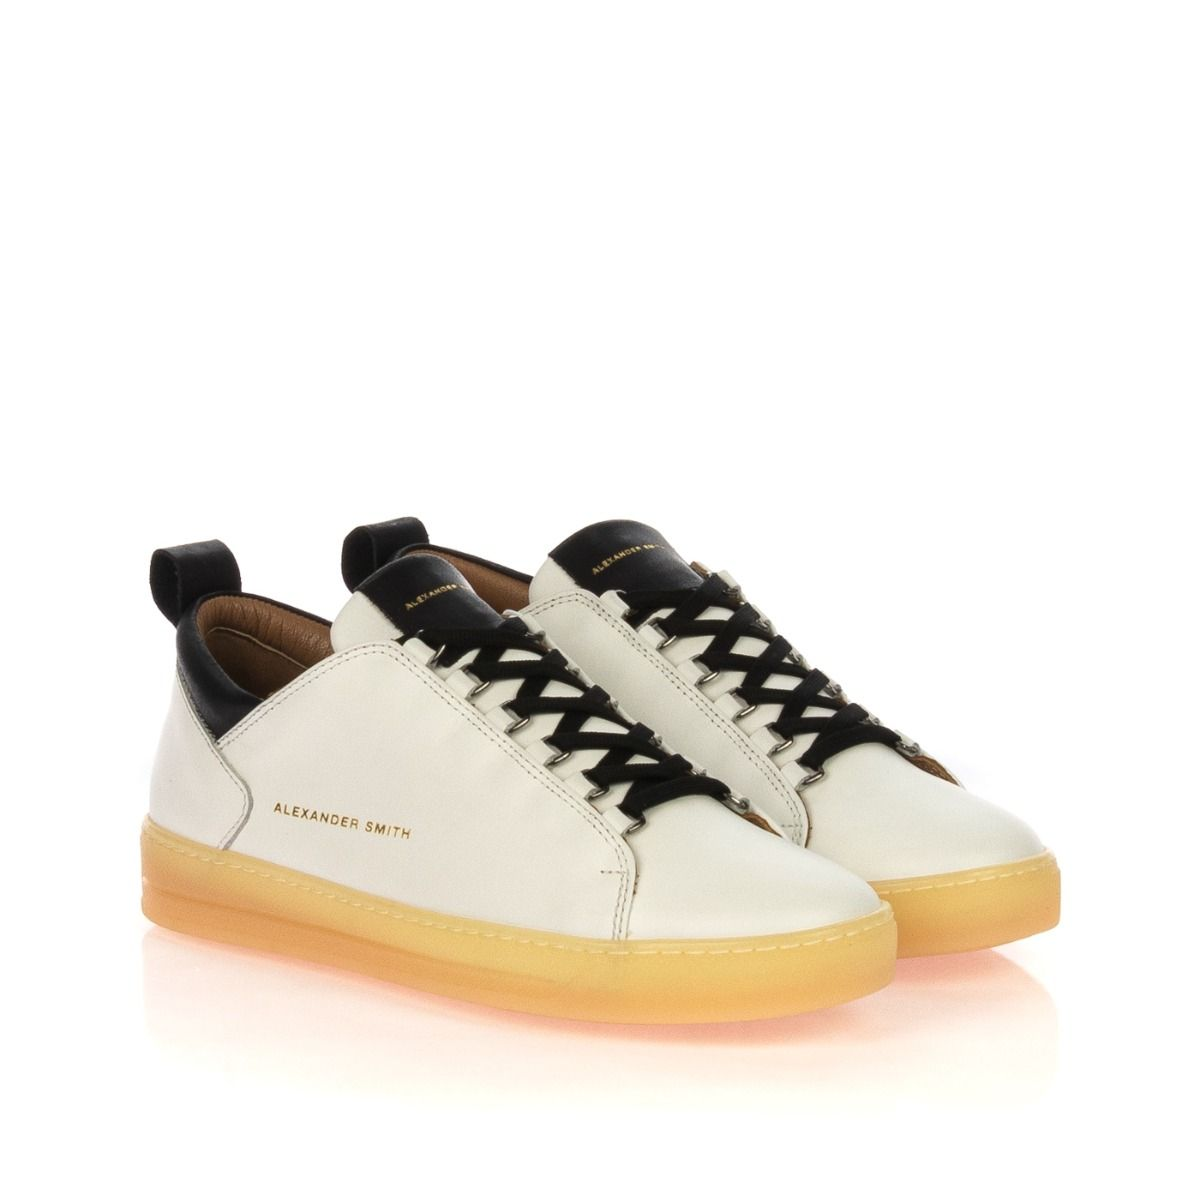 Sneakers uomo|ALEXANDER SMITH H75407 in